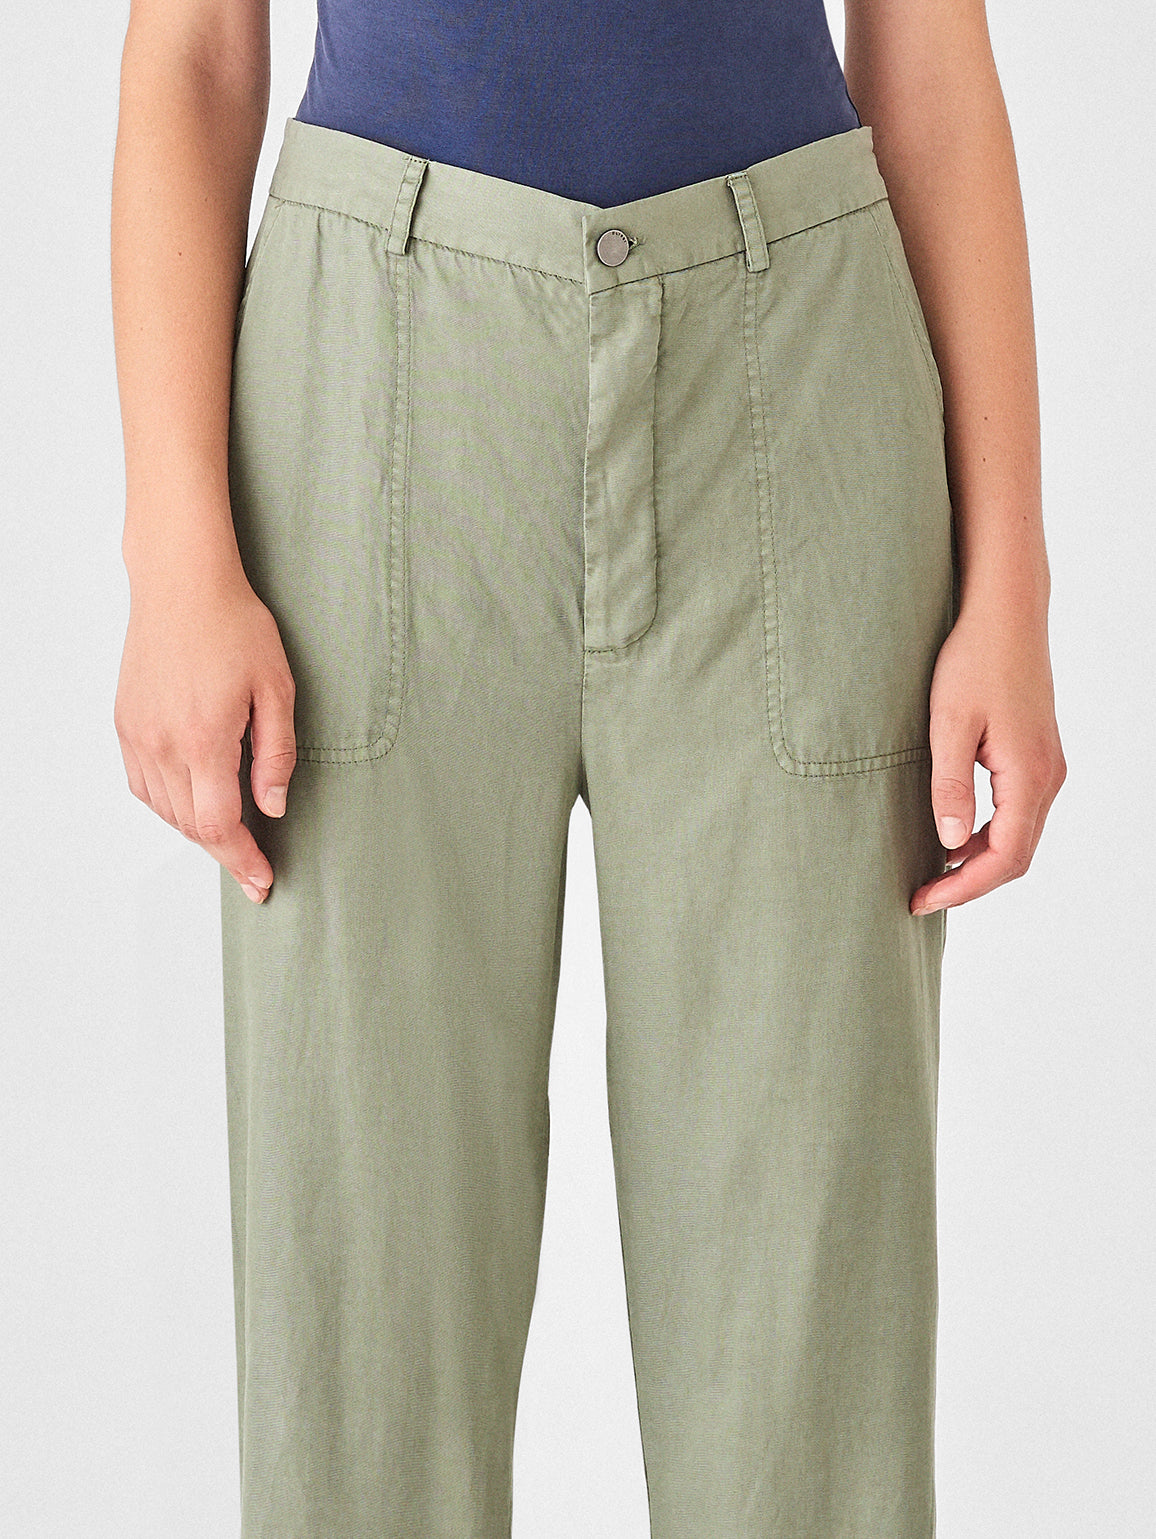 Lorimer St Pants | Sea Spray